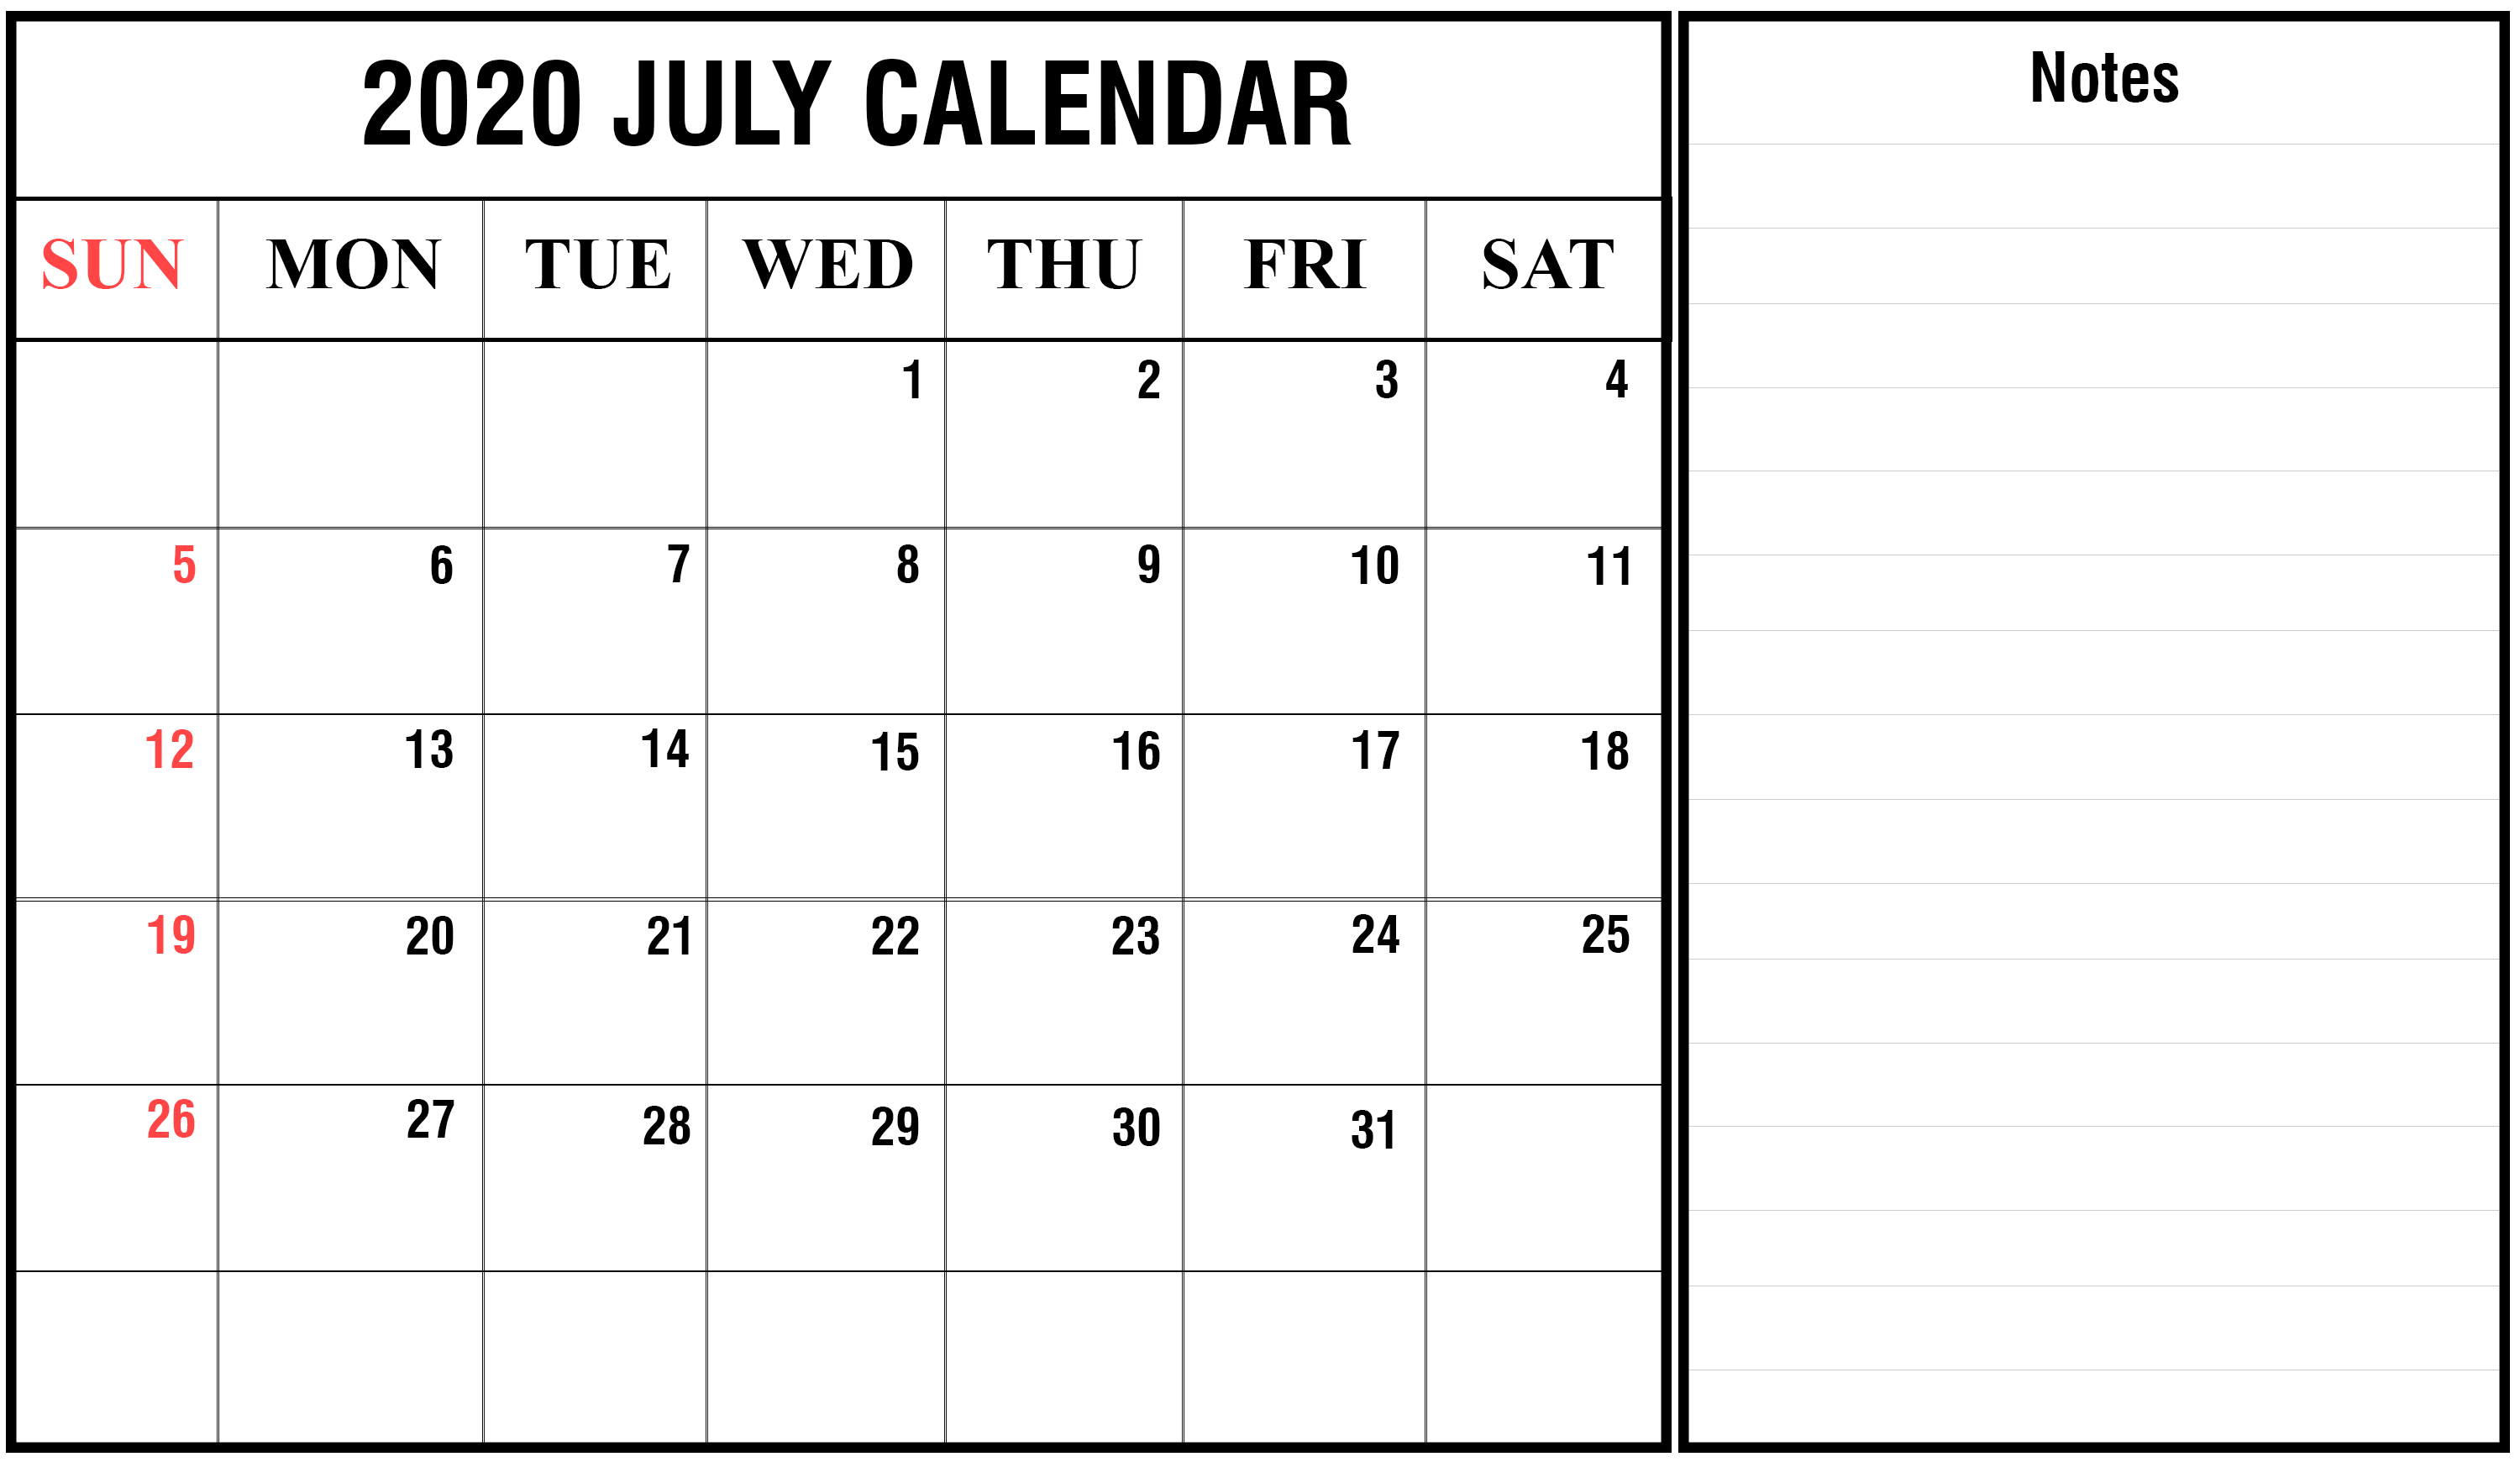 Blank July 2020 Calendar With Notes July July2020 July2020calendar 2020calendars Calendar Printables Printable Calendar Template March Calendar Printable